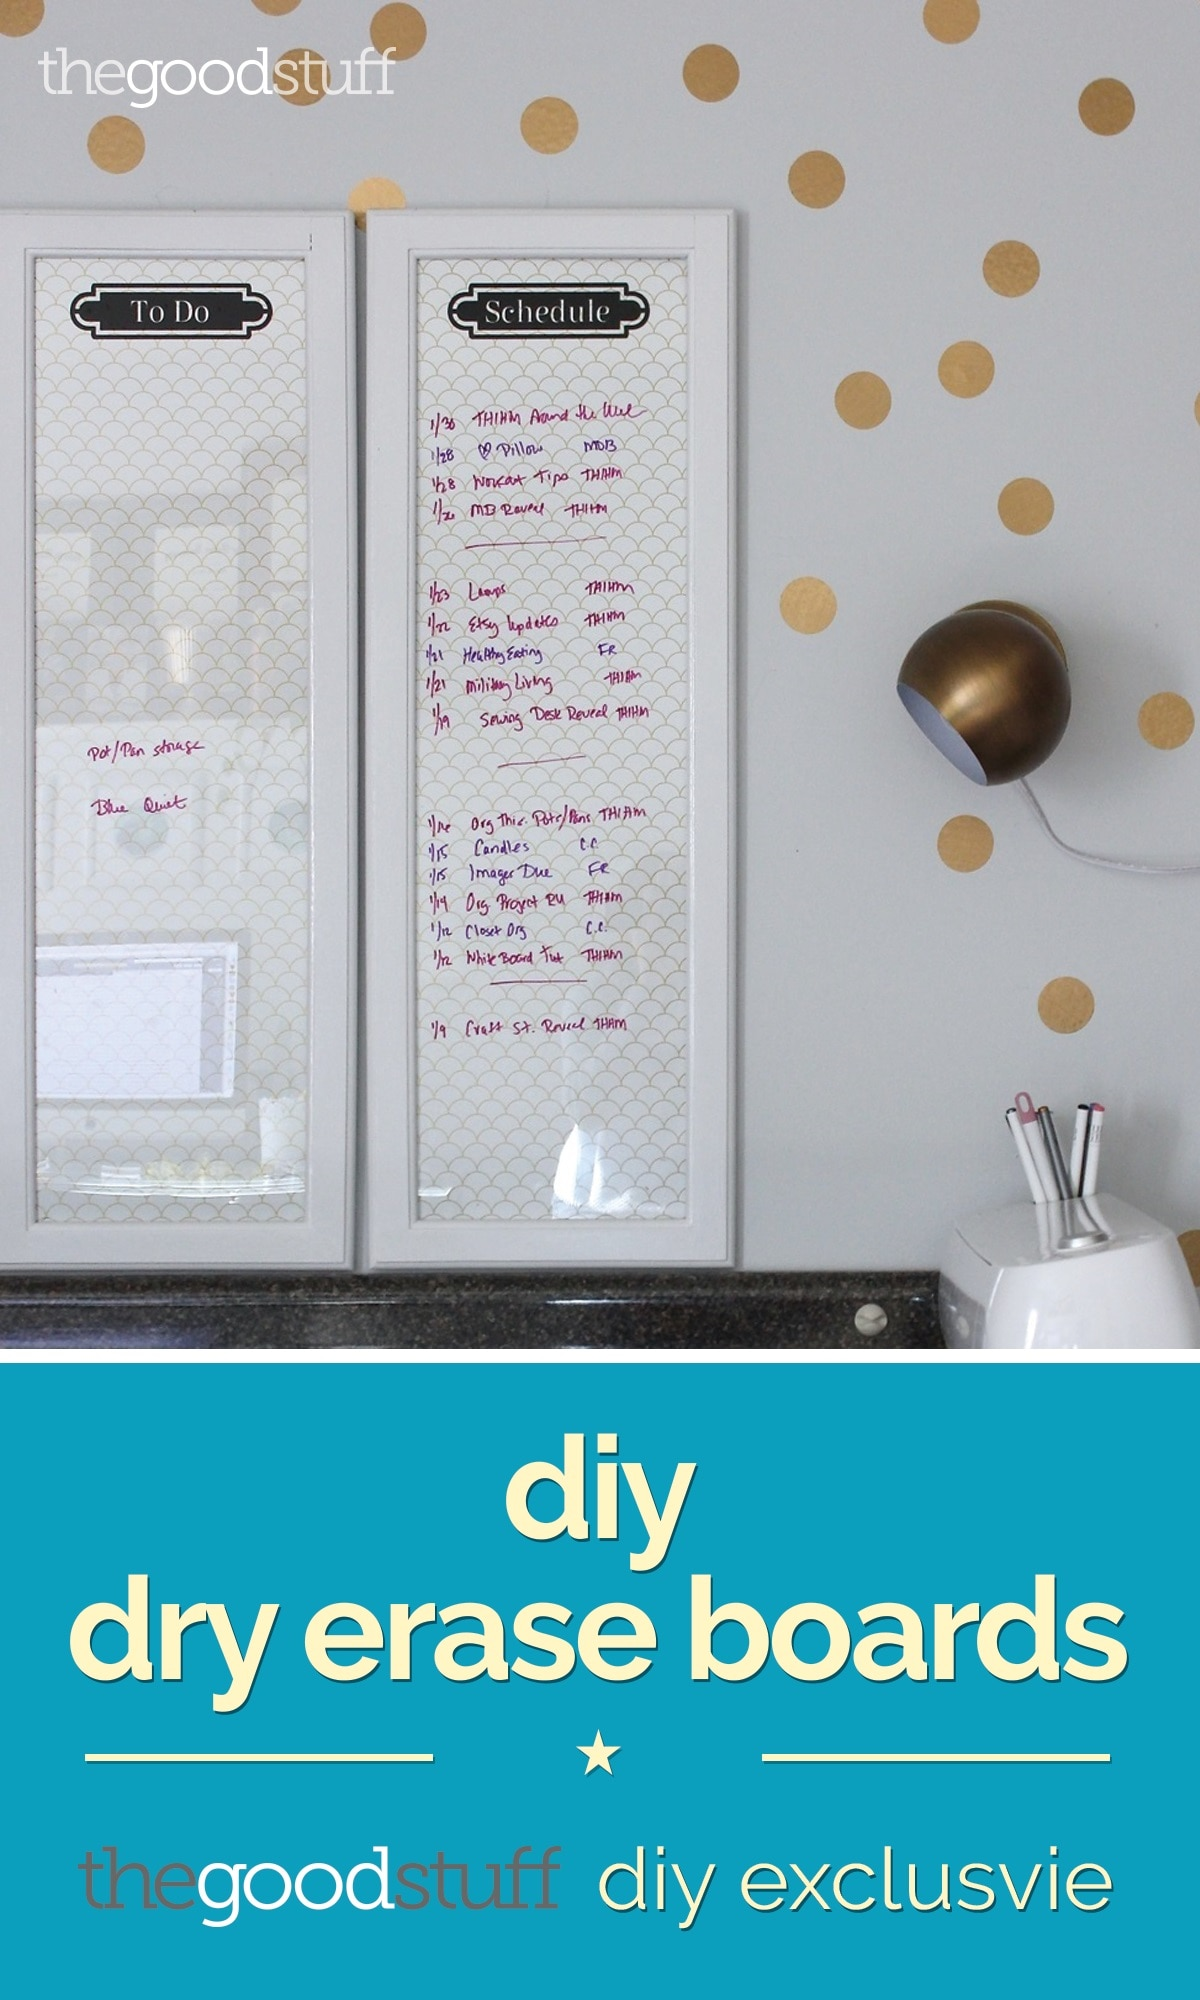 Dry Erase Boards From Old Frames Diy Exclusive Thegoodstuff